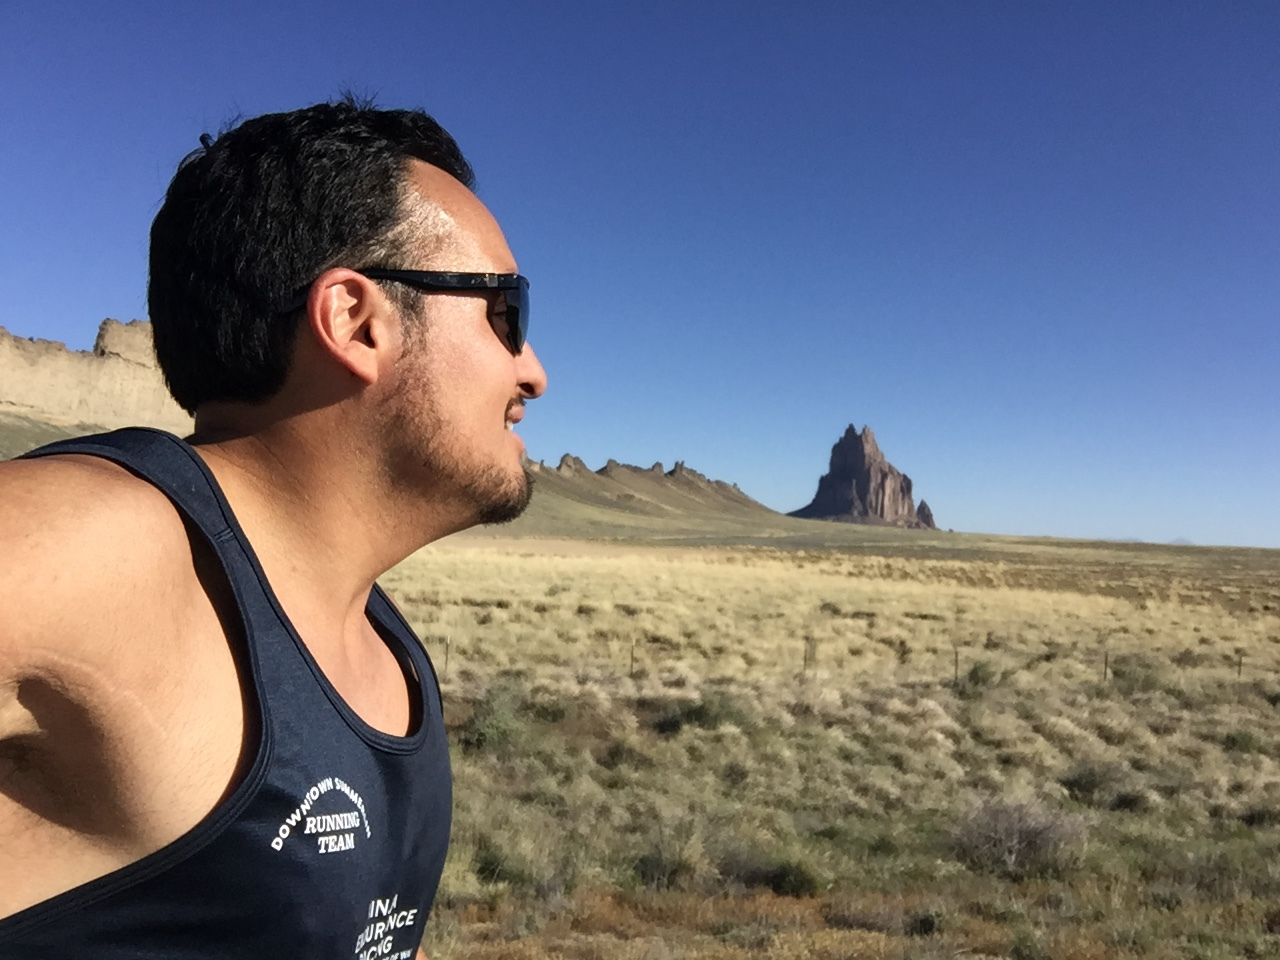 Shiprock in the background